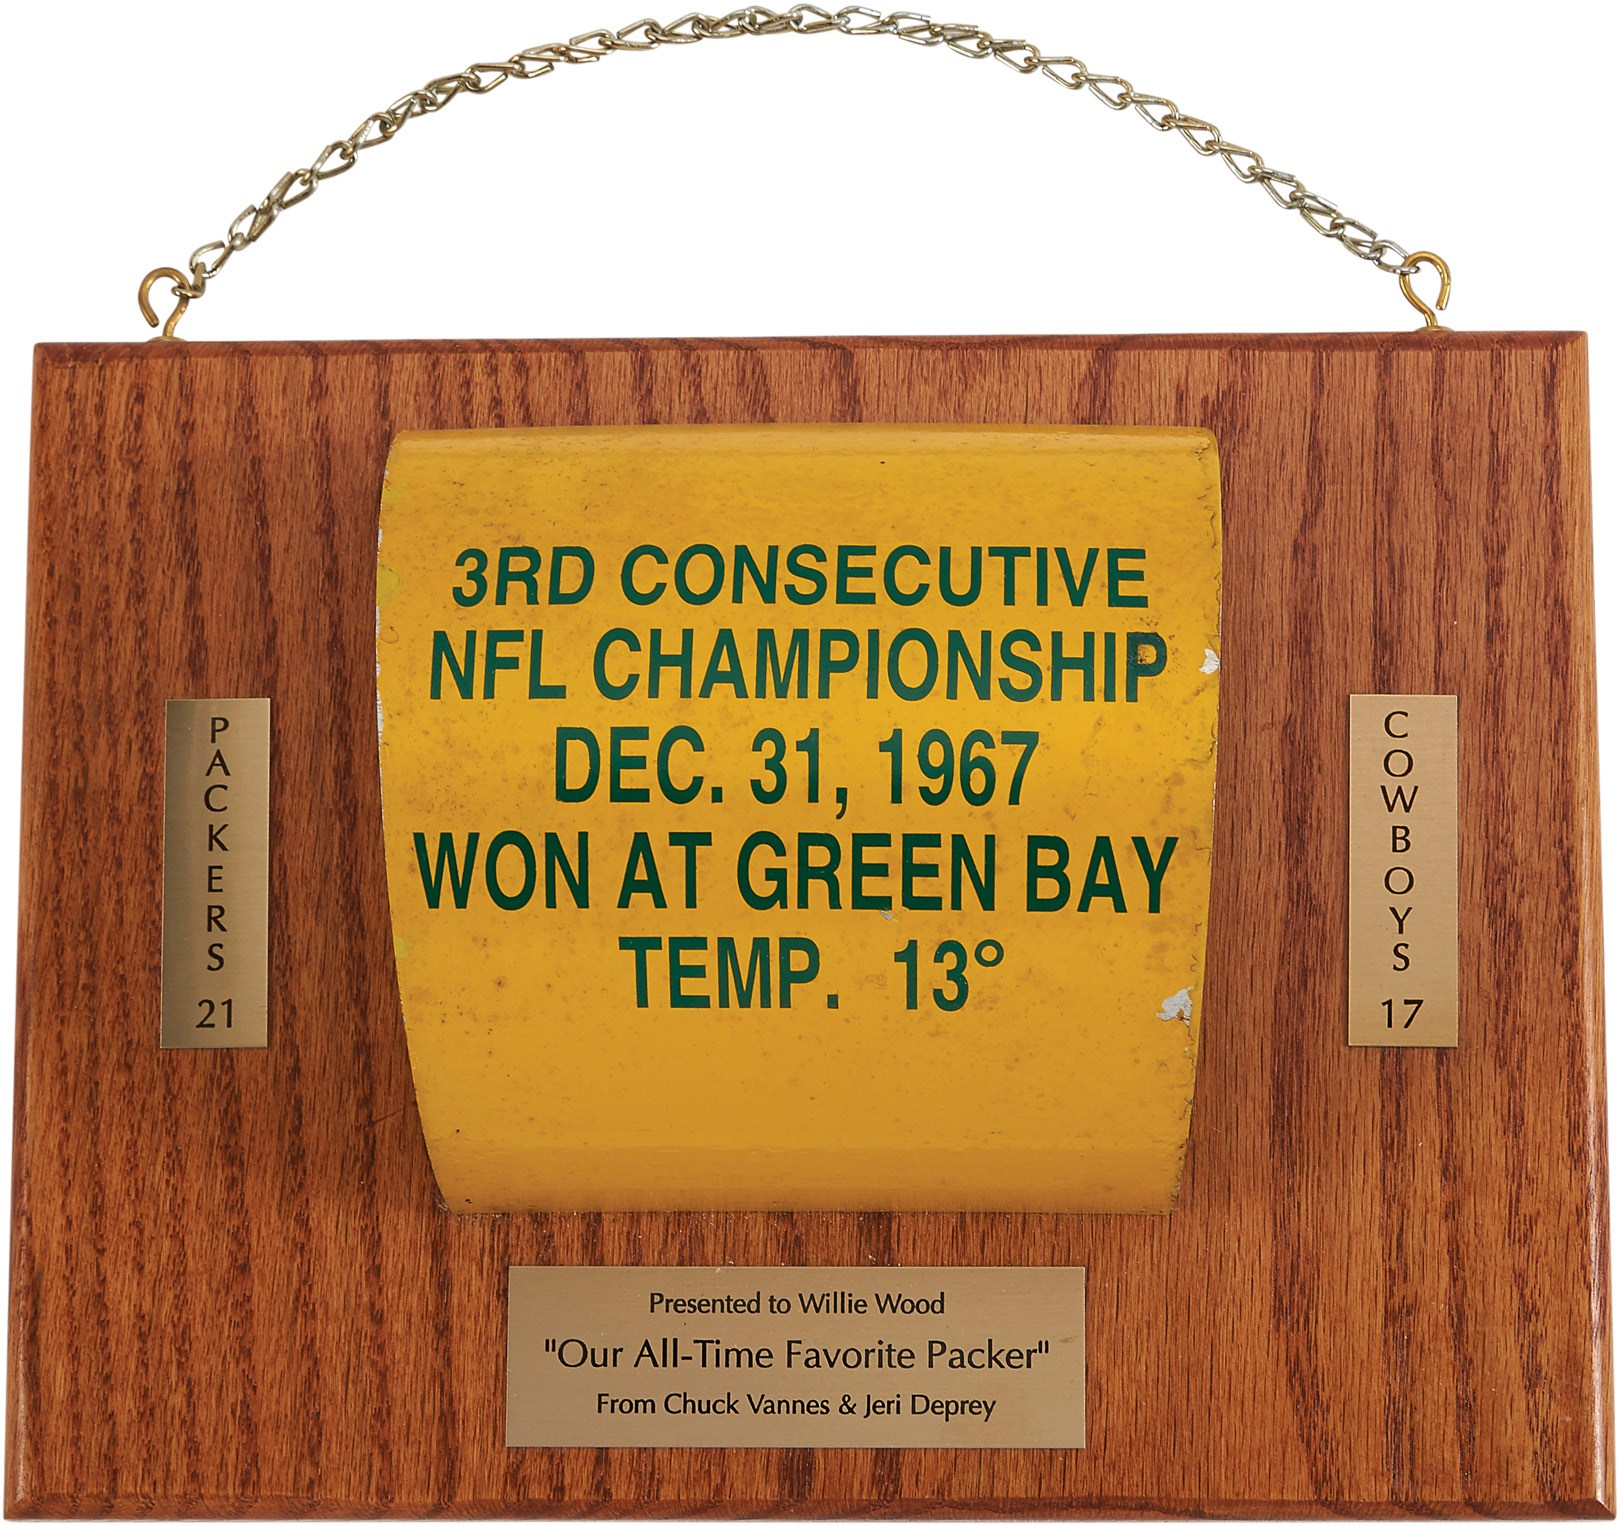 1967 Ice Bowl Game Goalpost Section Presented to Willie Wood